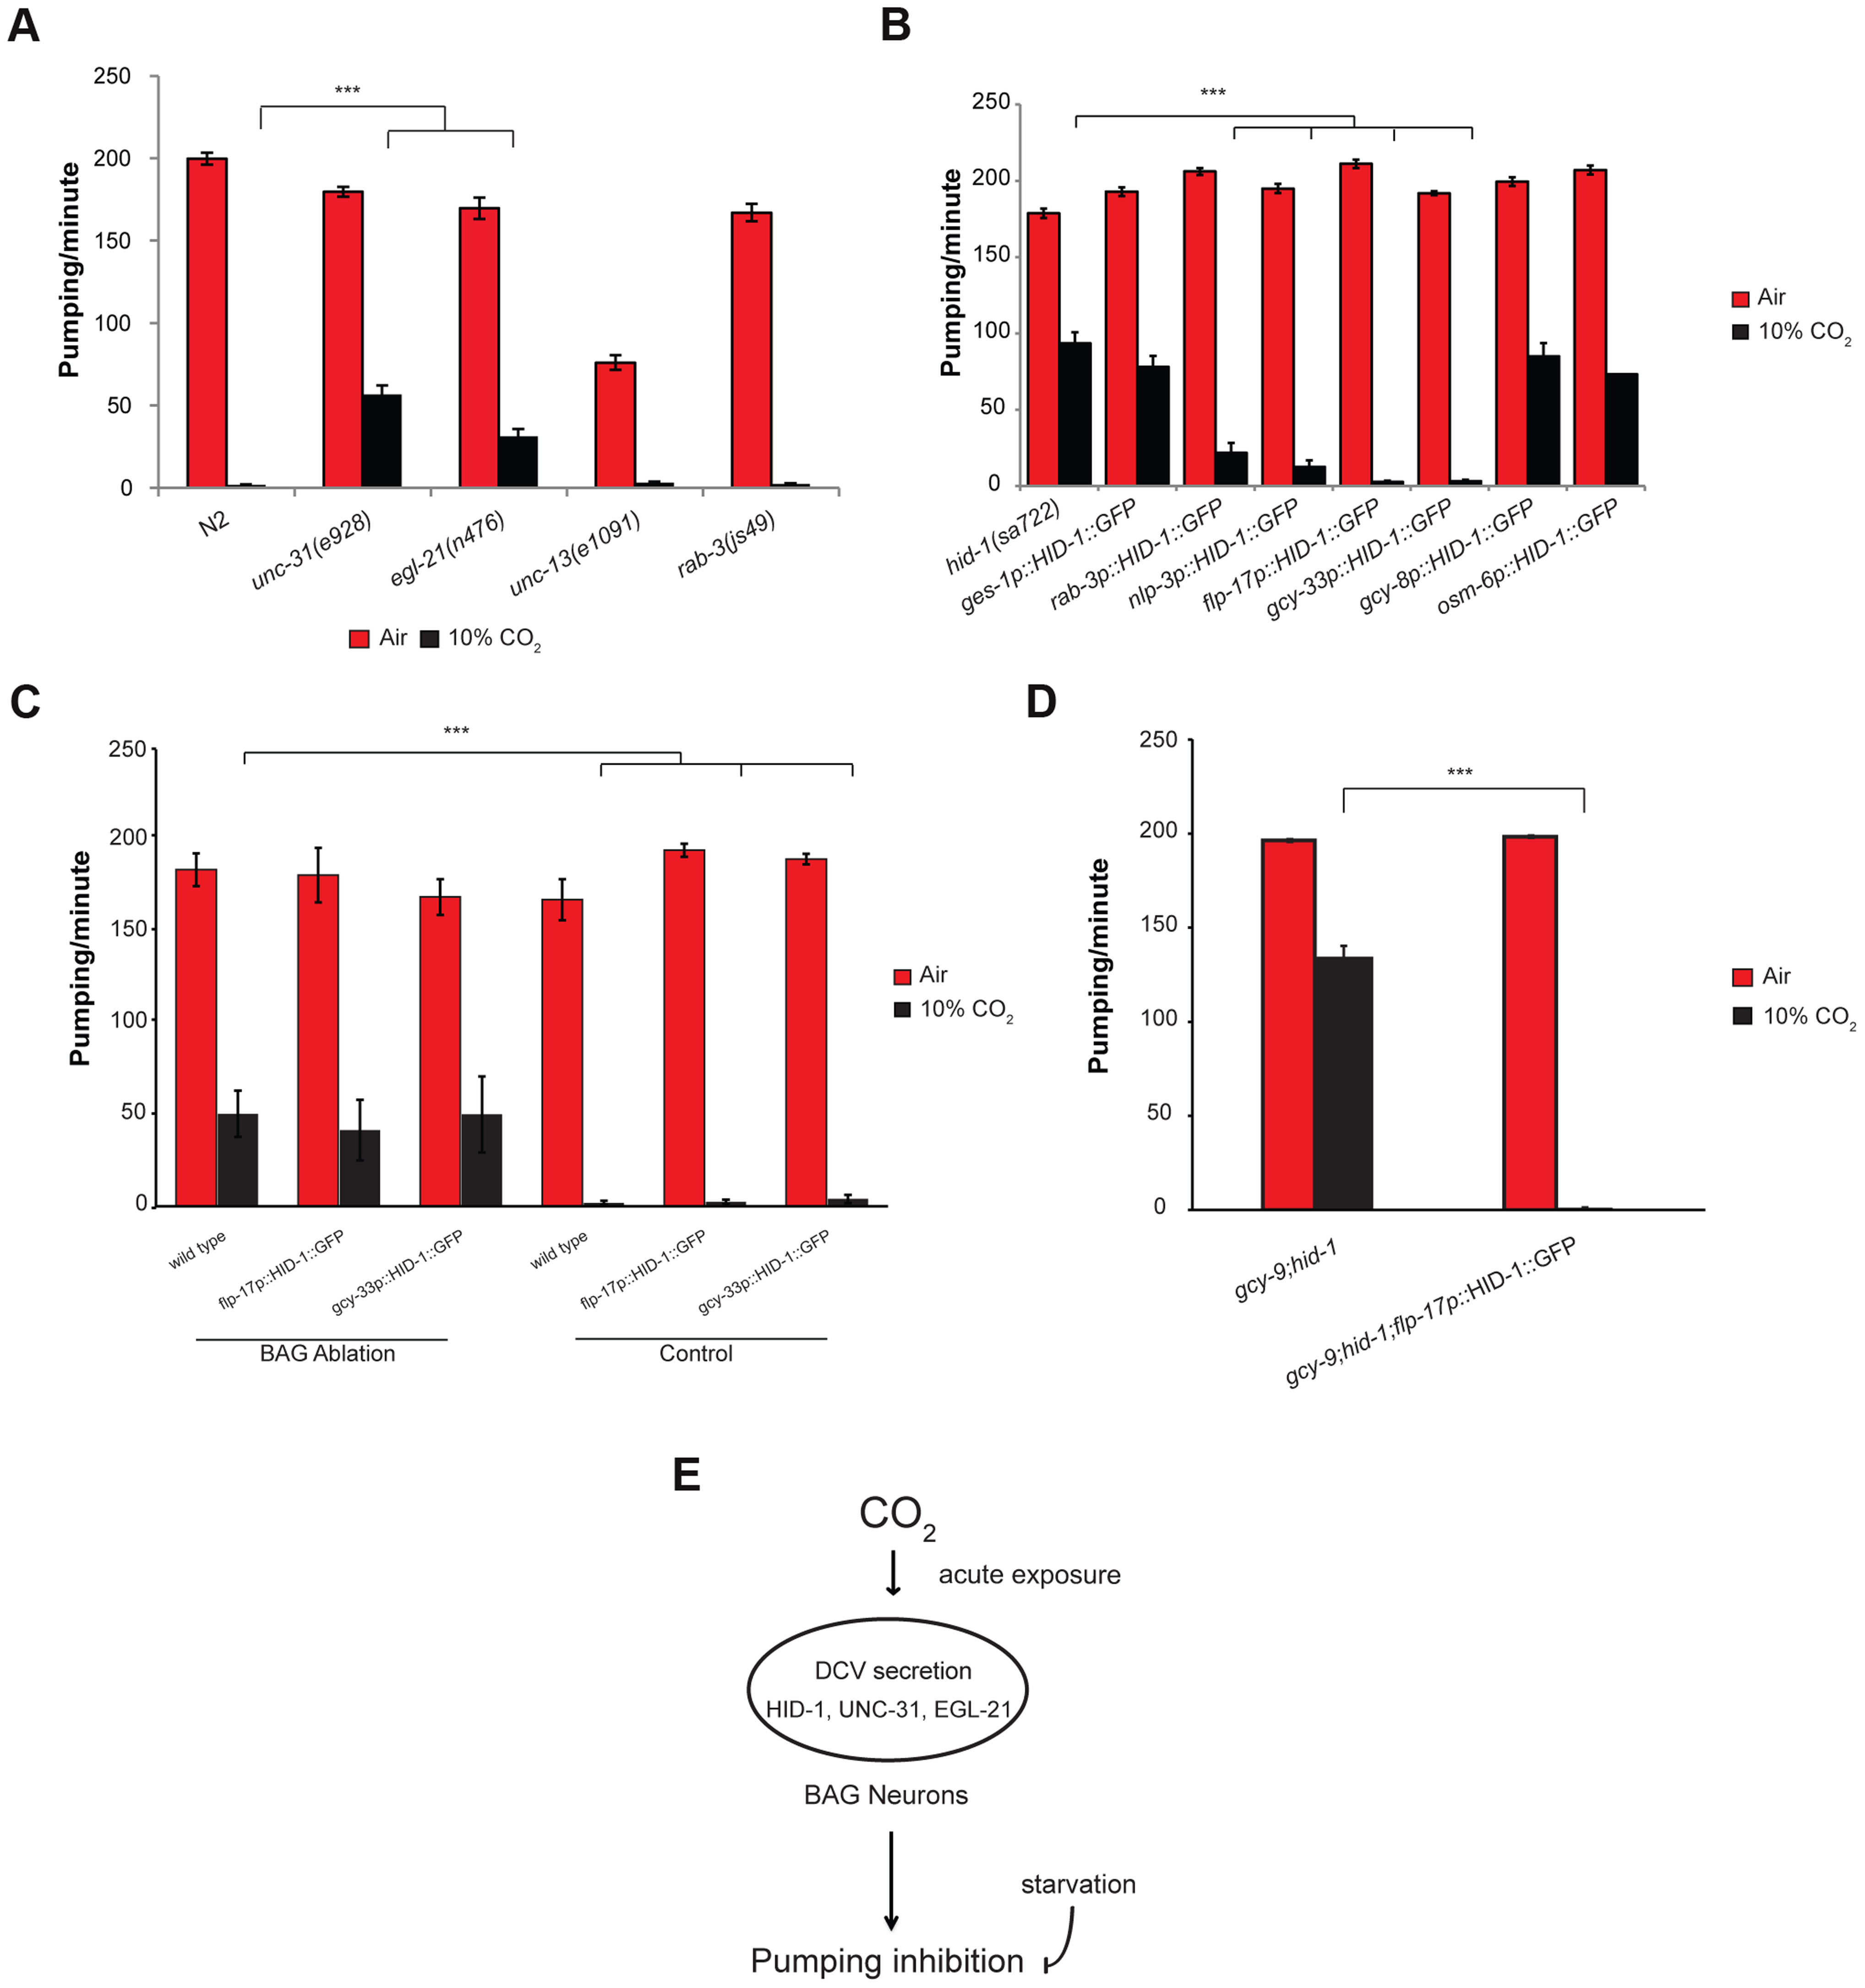 The effect of high CO<sub>2</sub> level on the pharynx requires HID-1 activity in the BAG neurons.